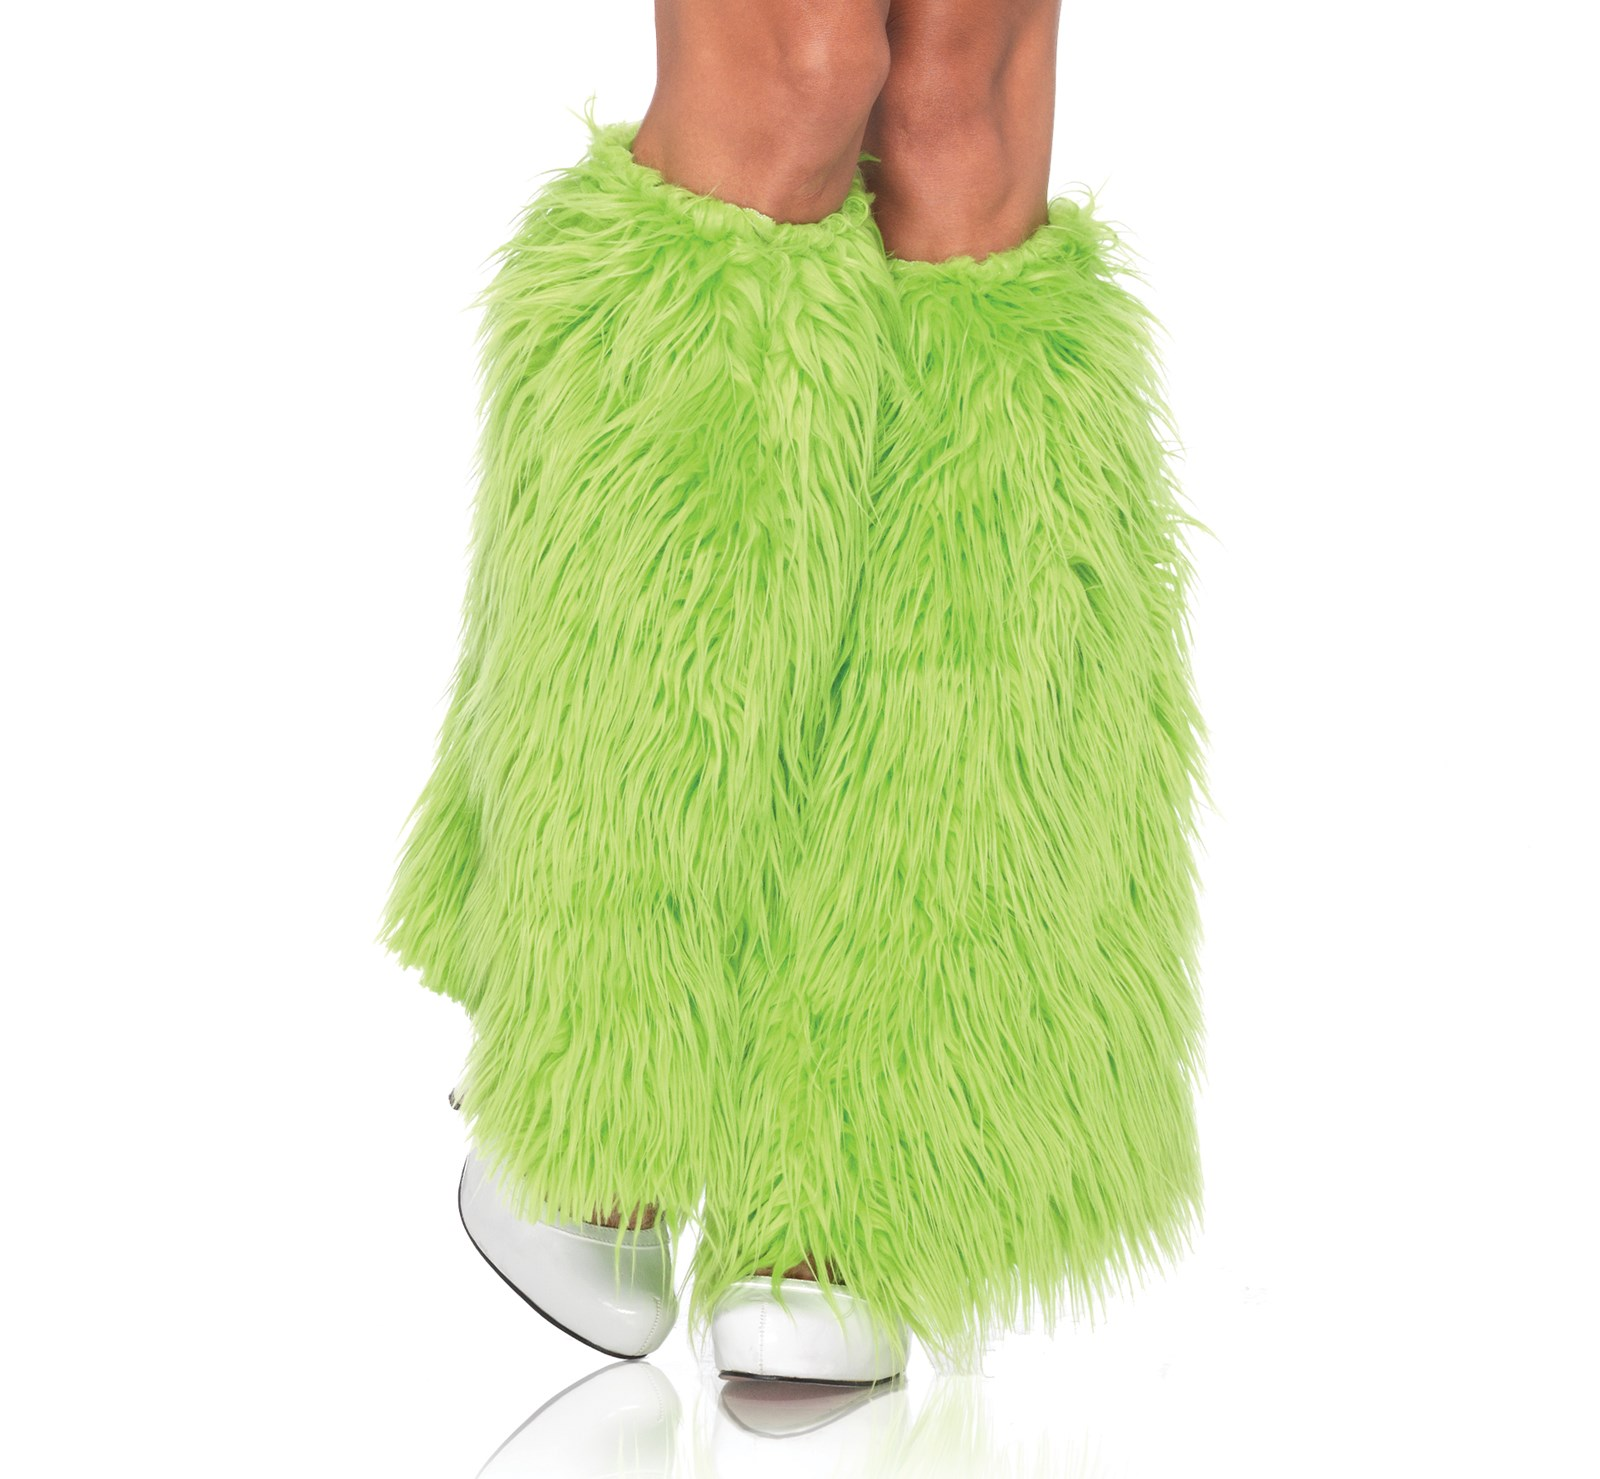 Image of Furry Green Leg Warmers (Adult)